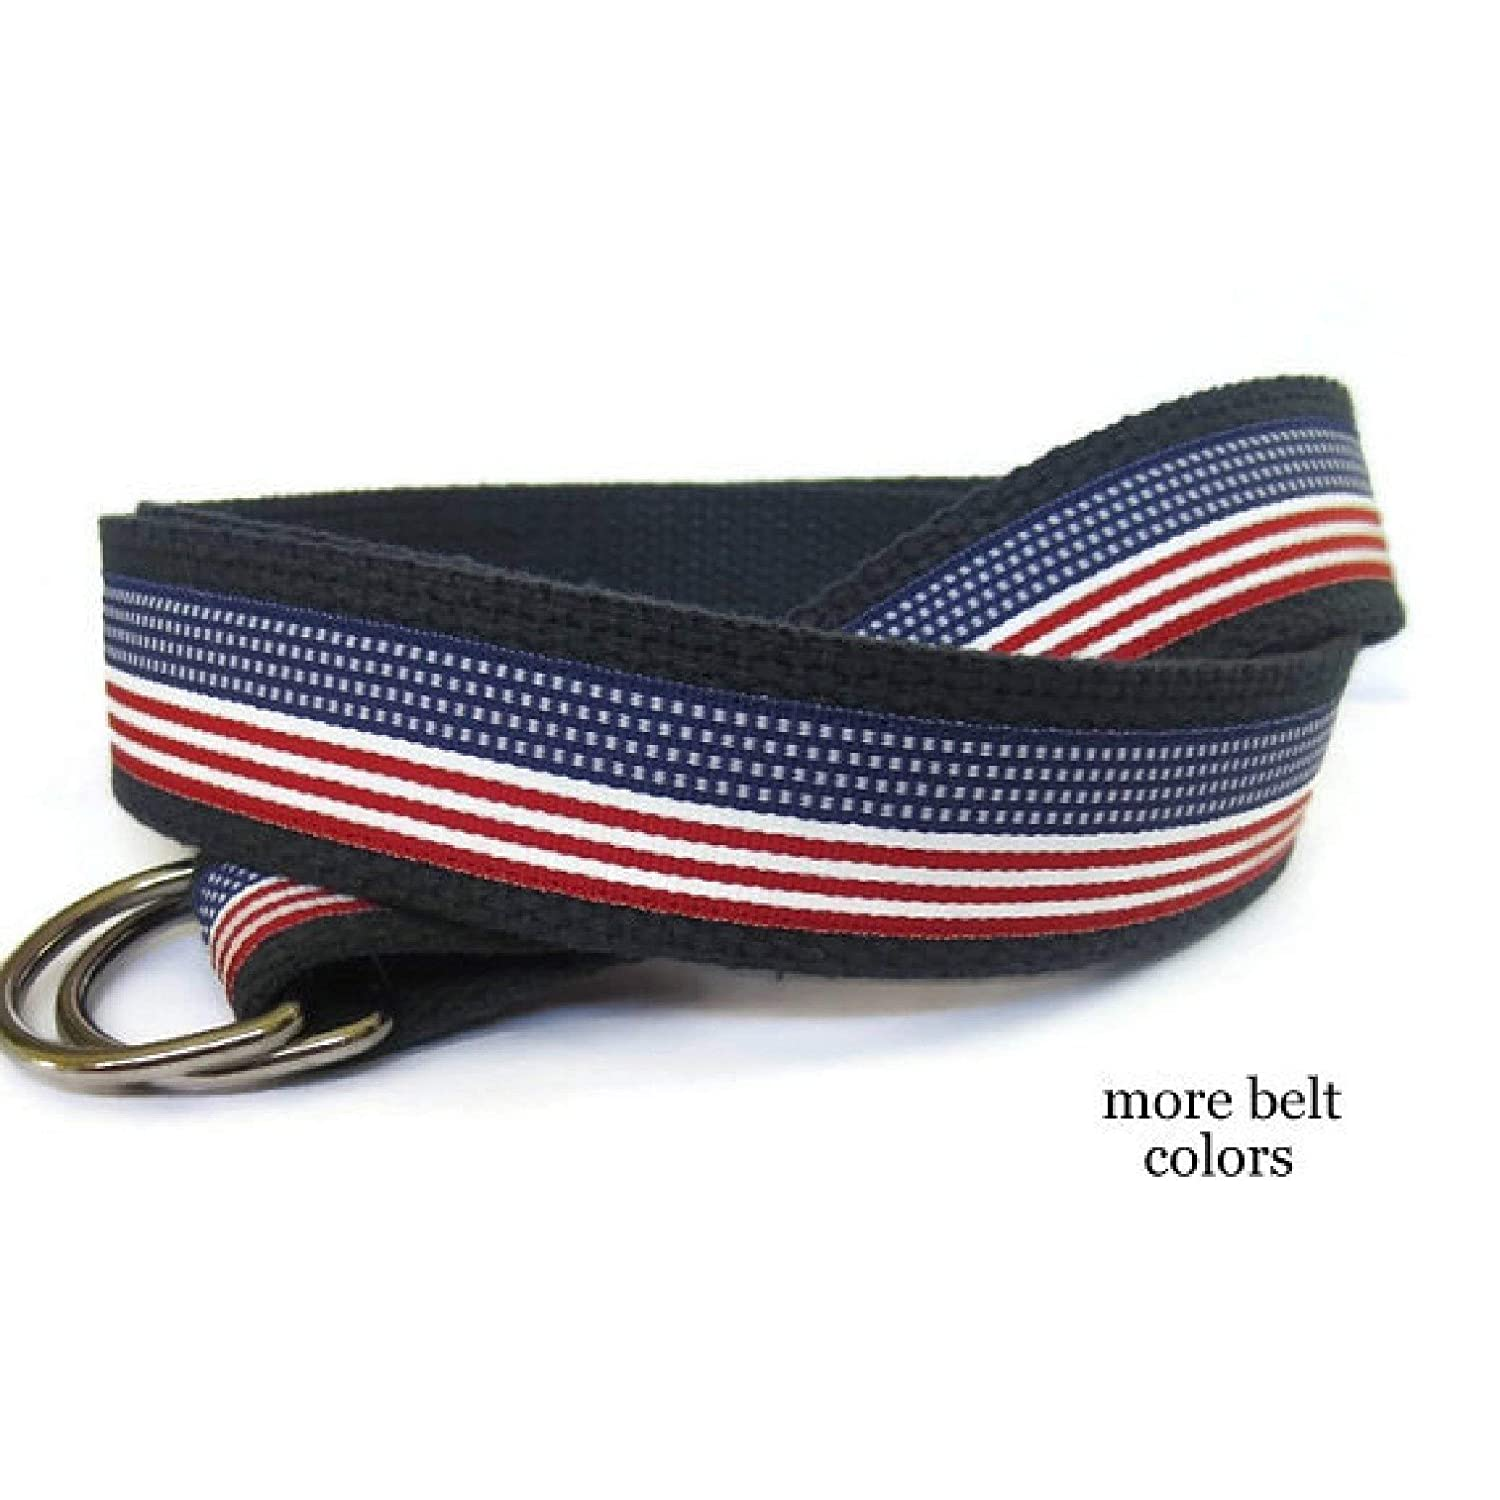 Mens Belt/American Flag Belt Red White Blue Mens Canvas Belt/Patriotic Ribbon Belt / 4th of July Belt/USA Webbing Belt- for men, teens Big & Tall